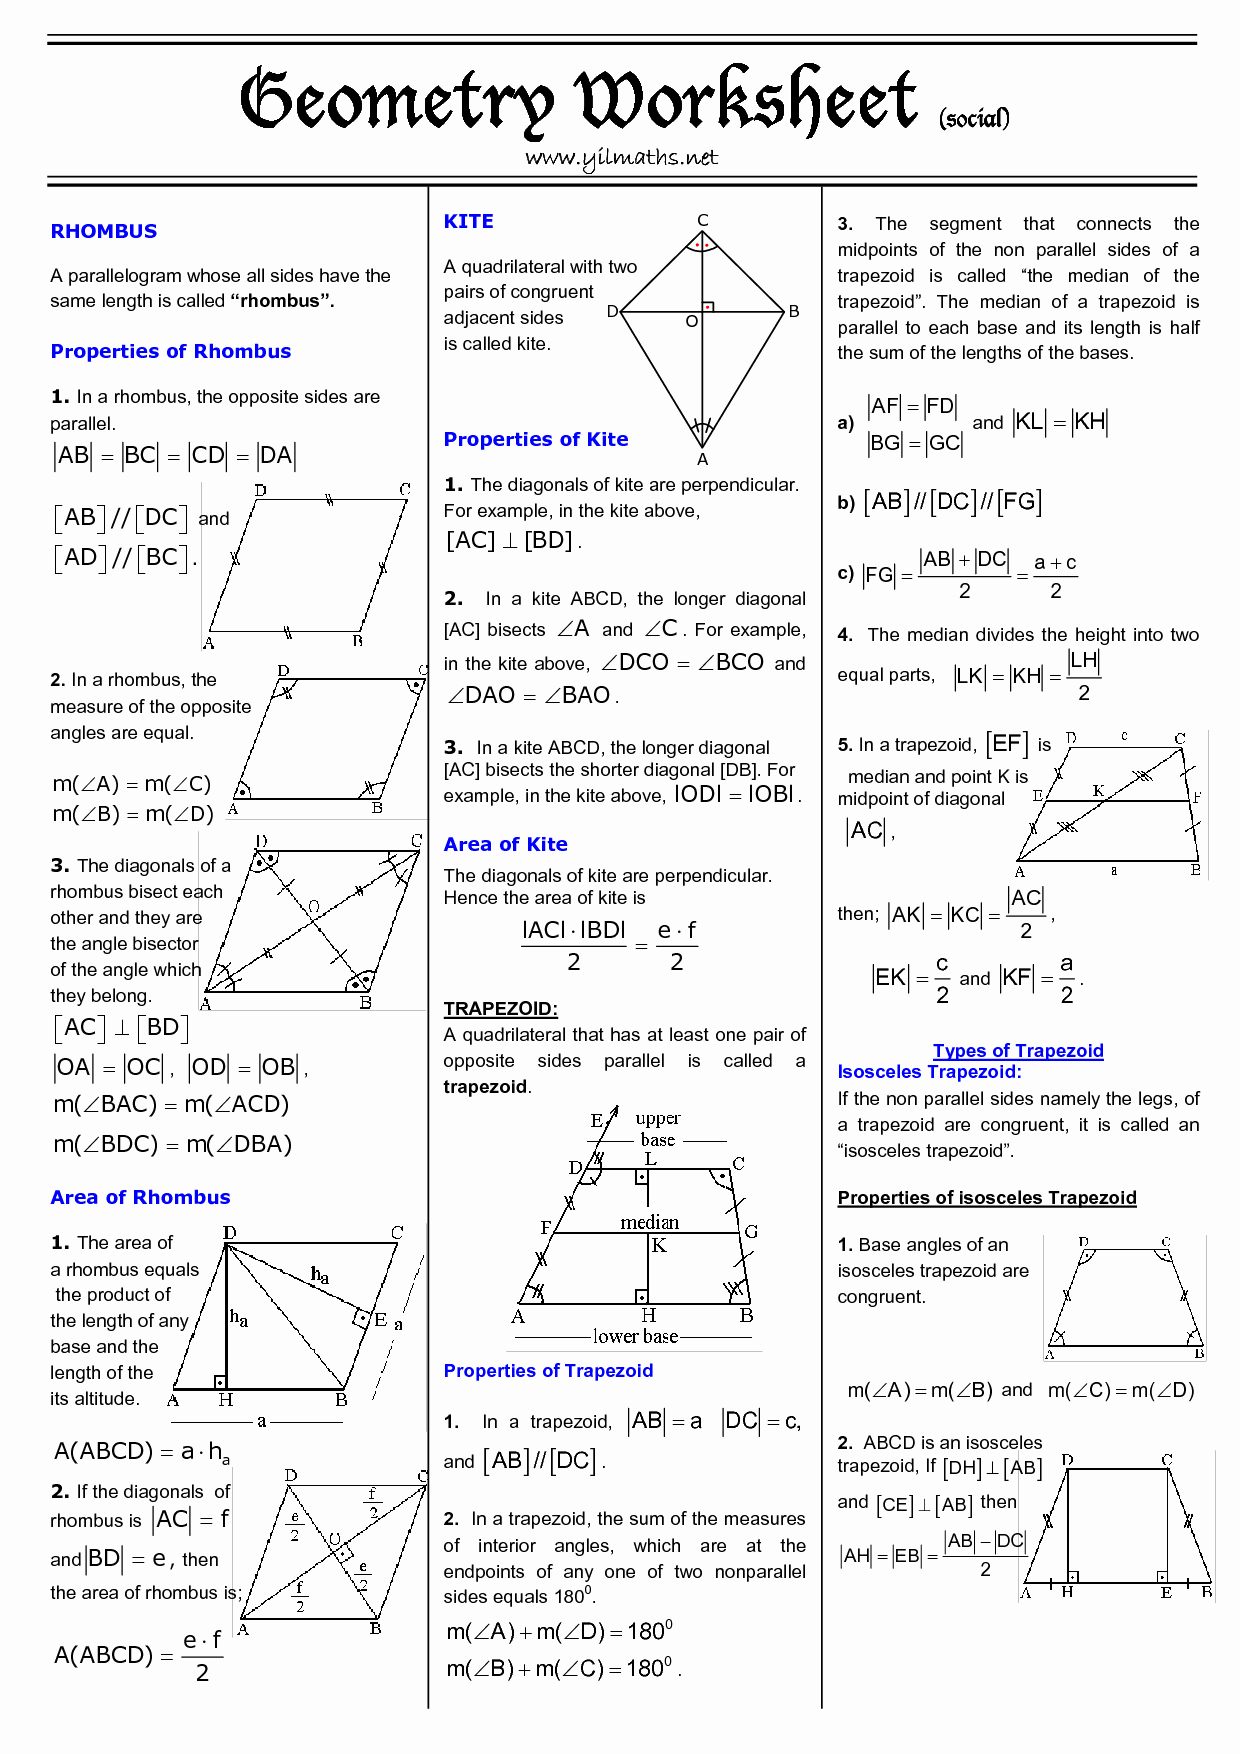 Geometry Worksheet Kites and Trapezoids Elegant Trapezoids and Kites Worksheet